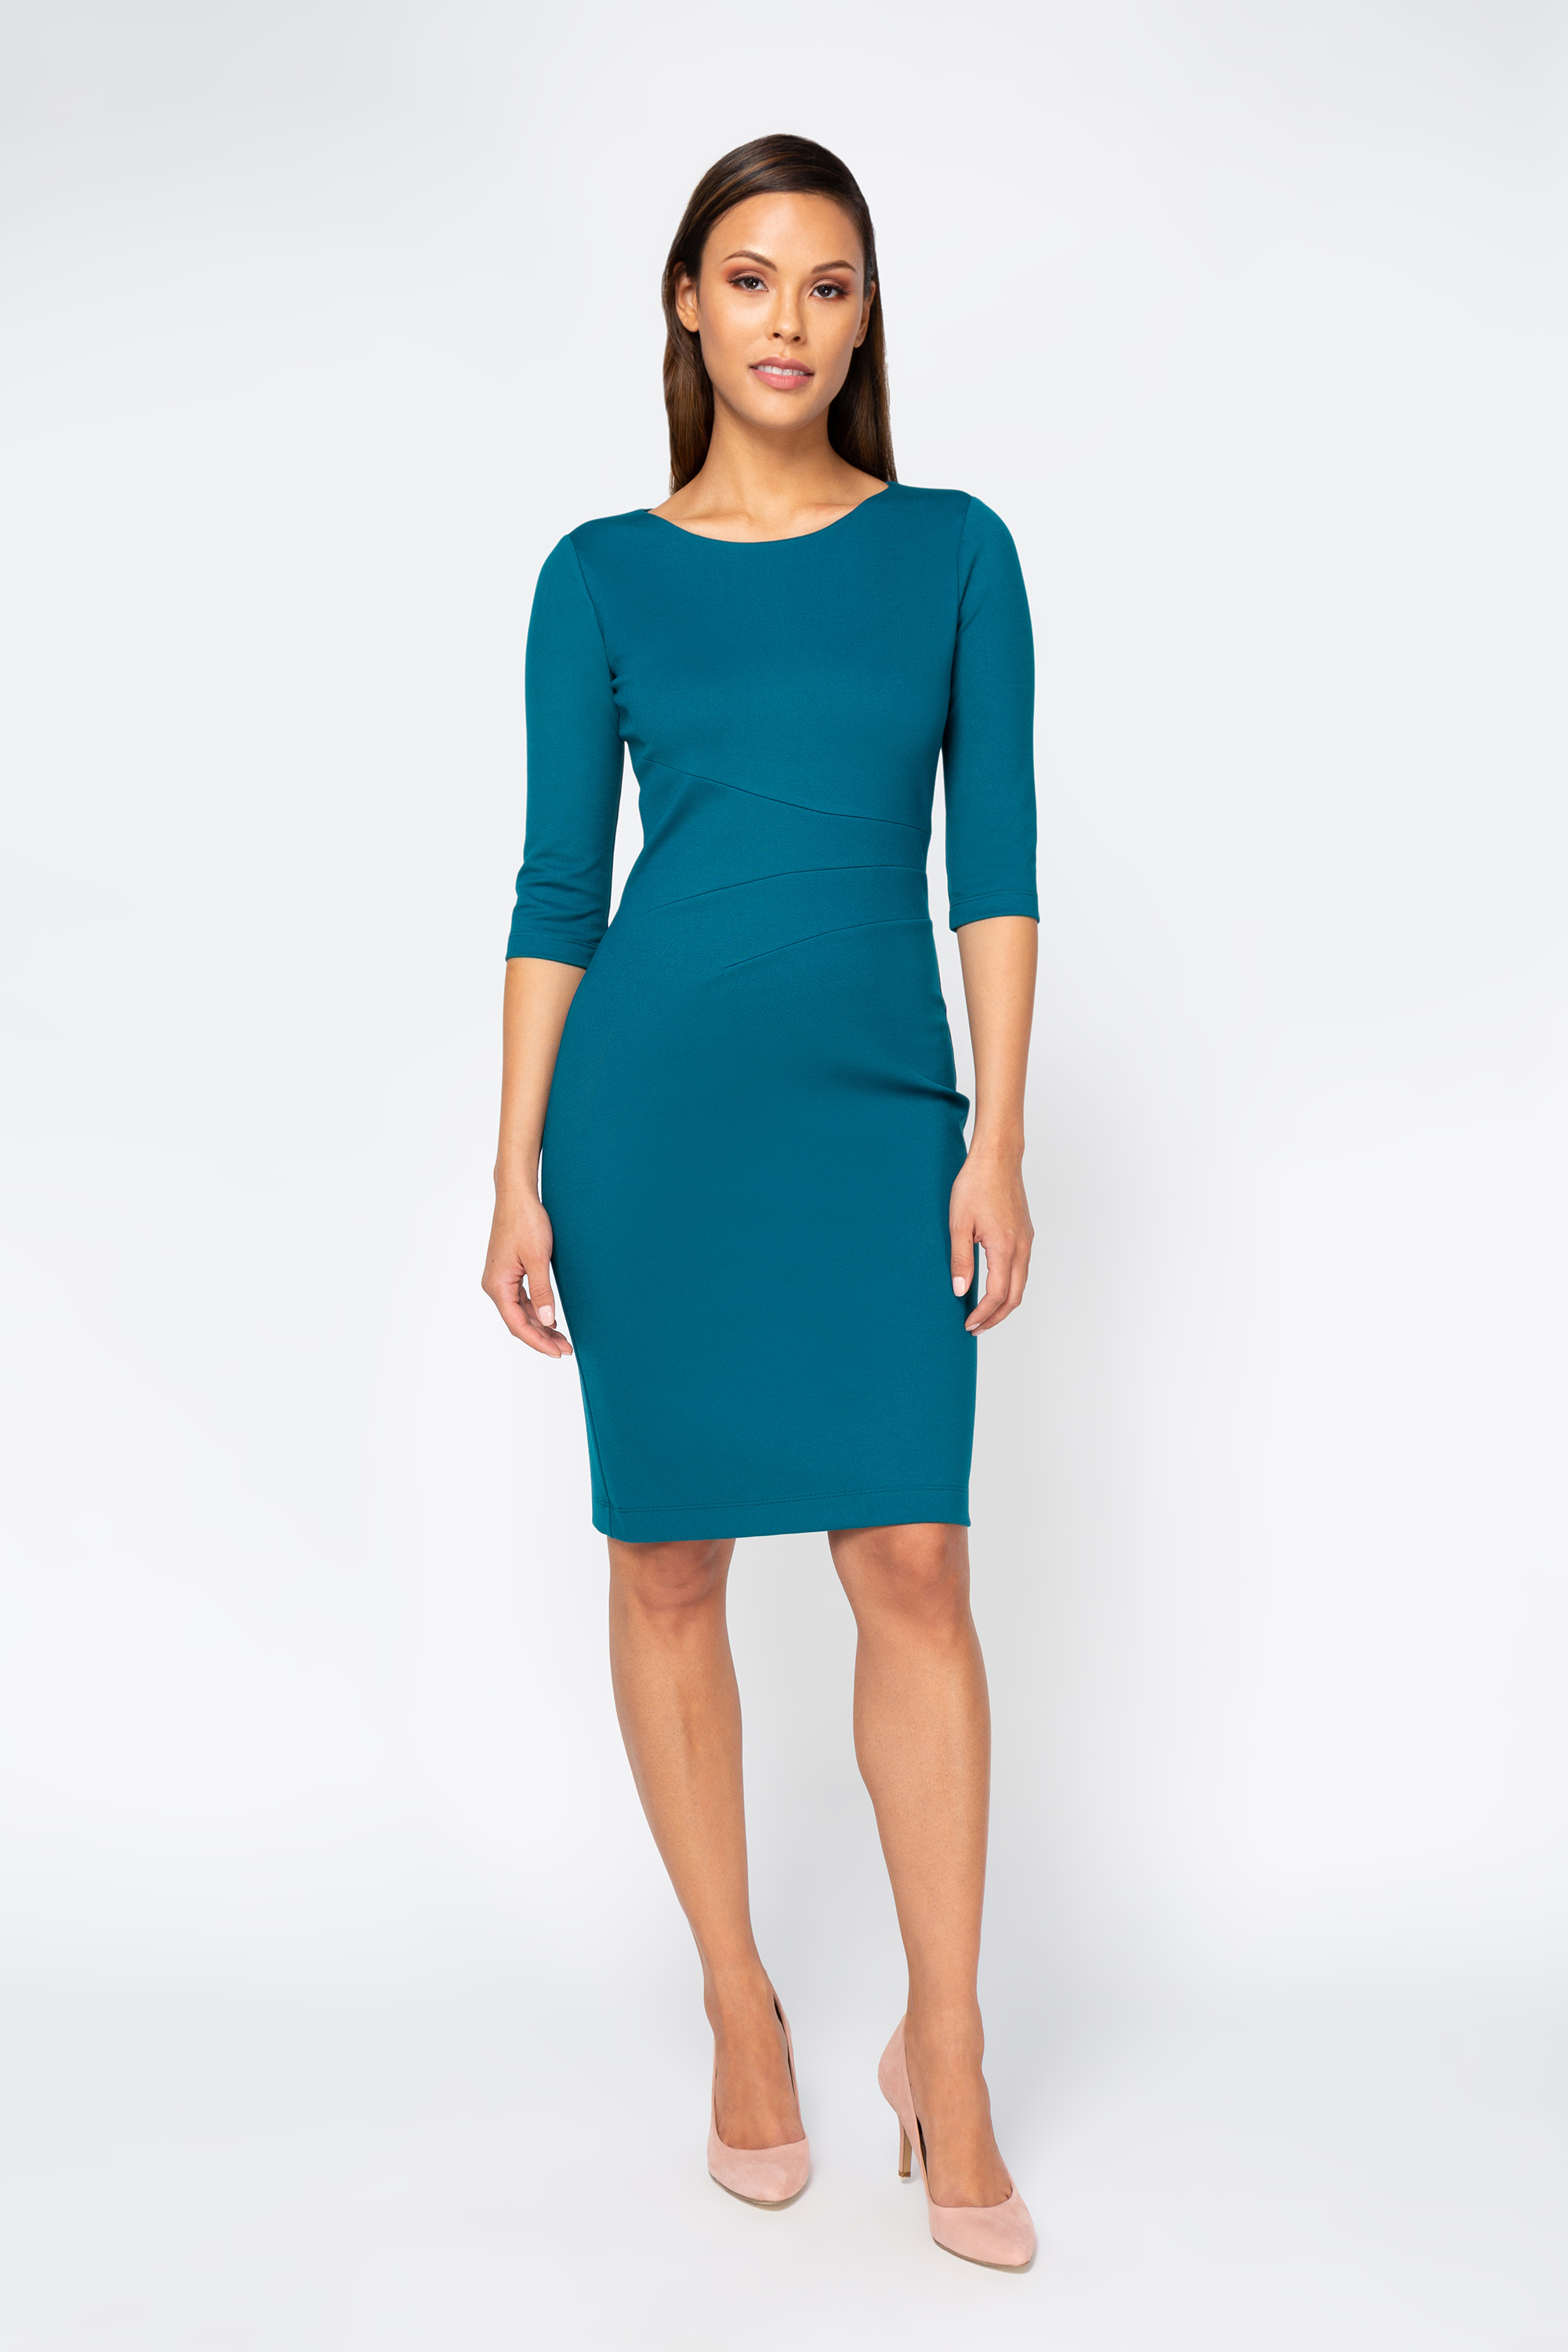 Nora EvelynDress Teal - Get Yours Here